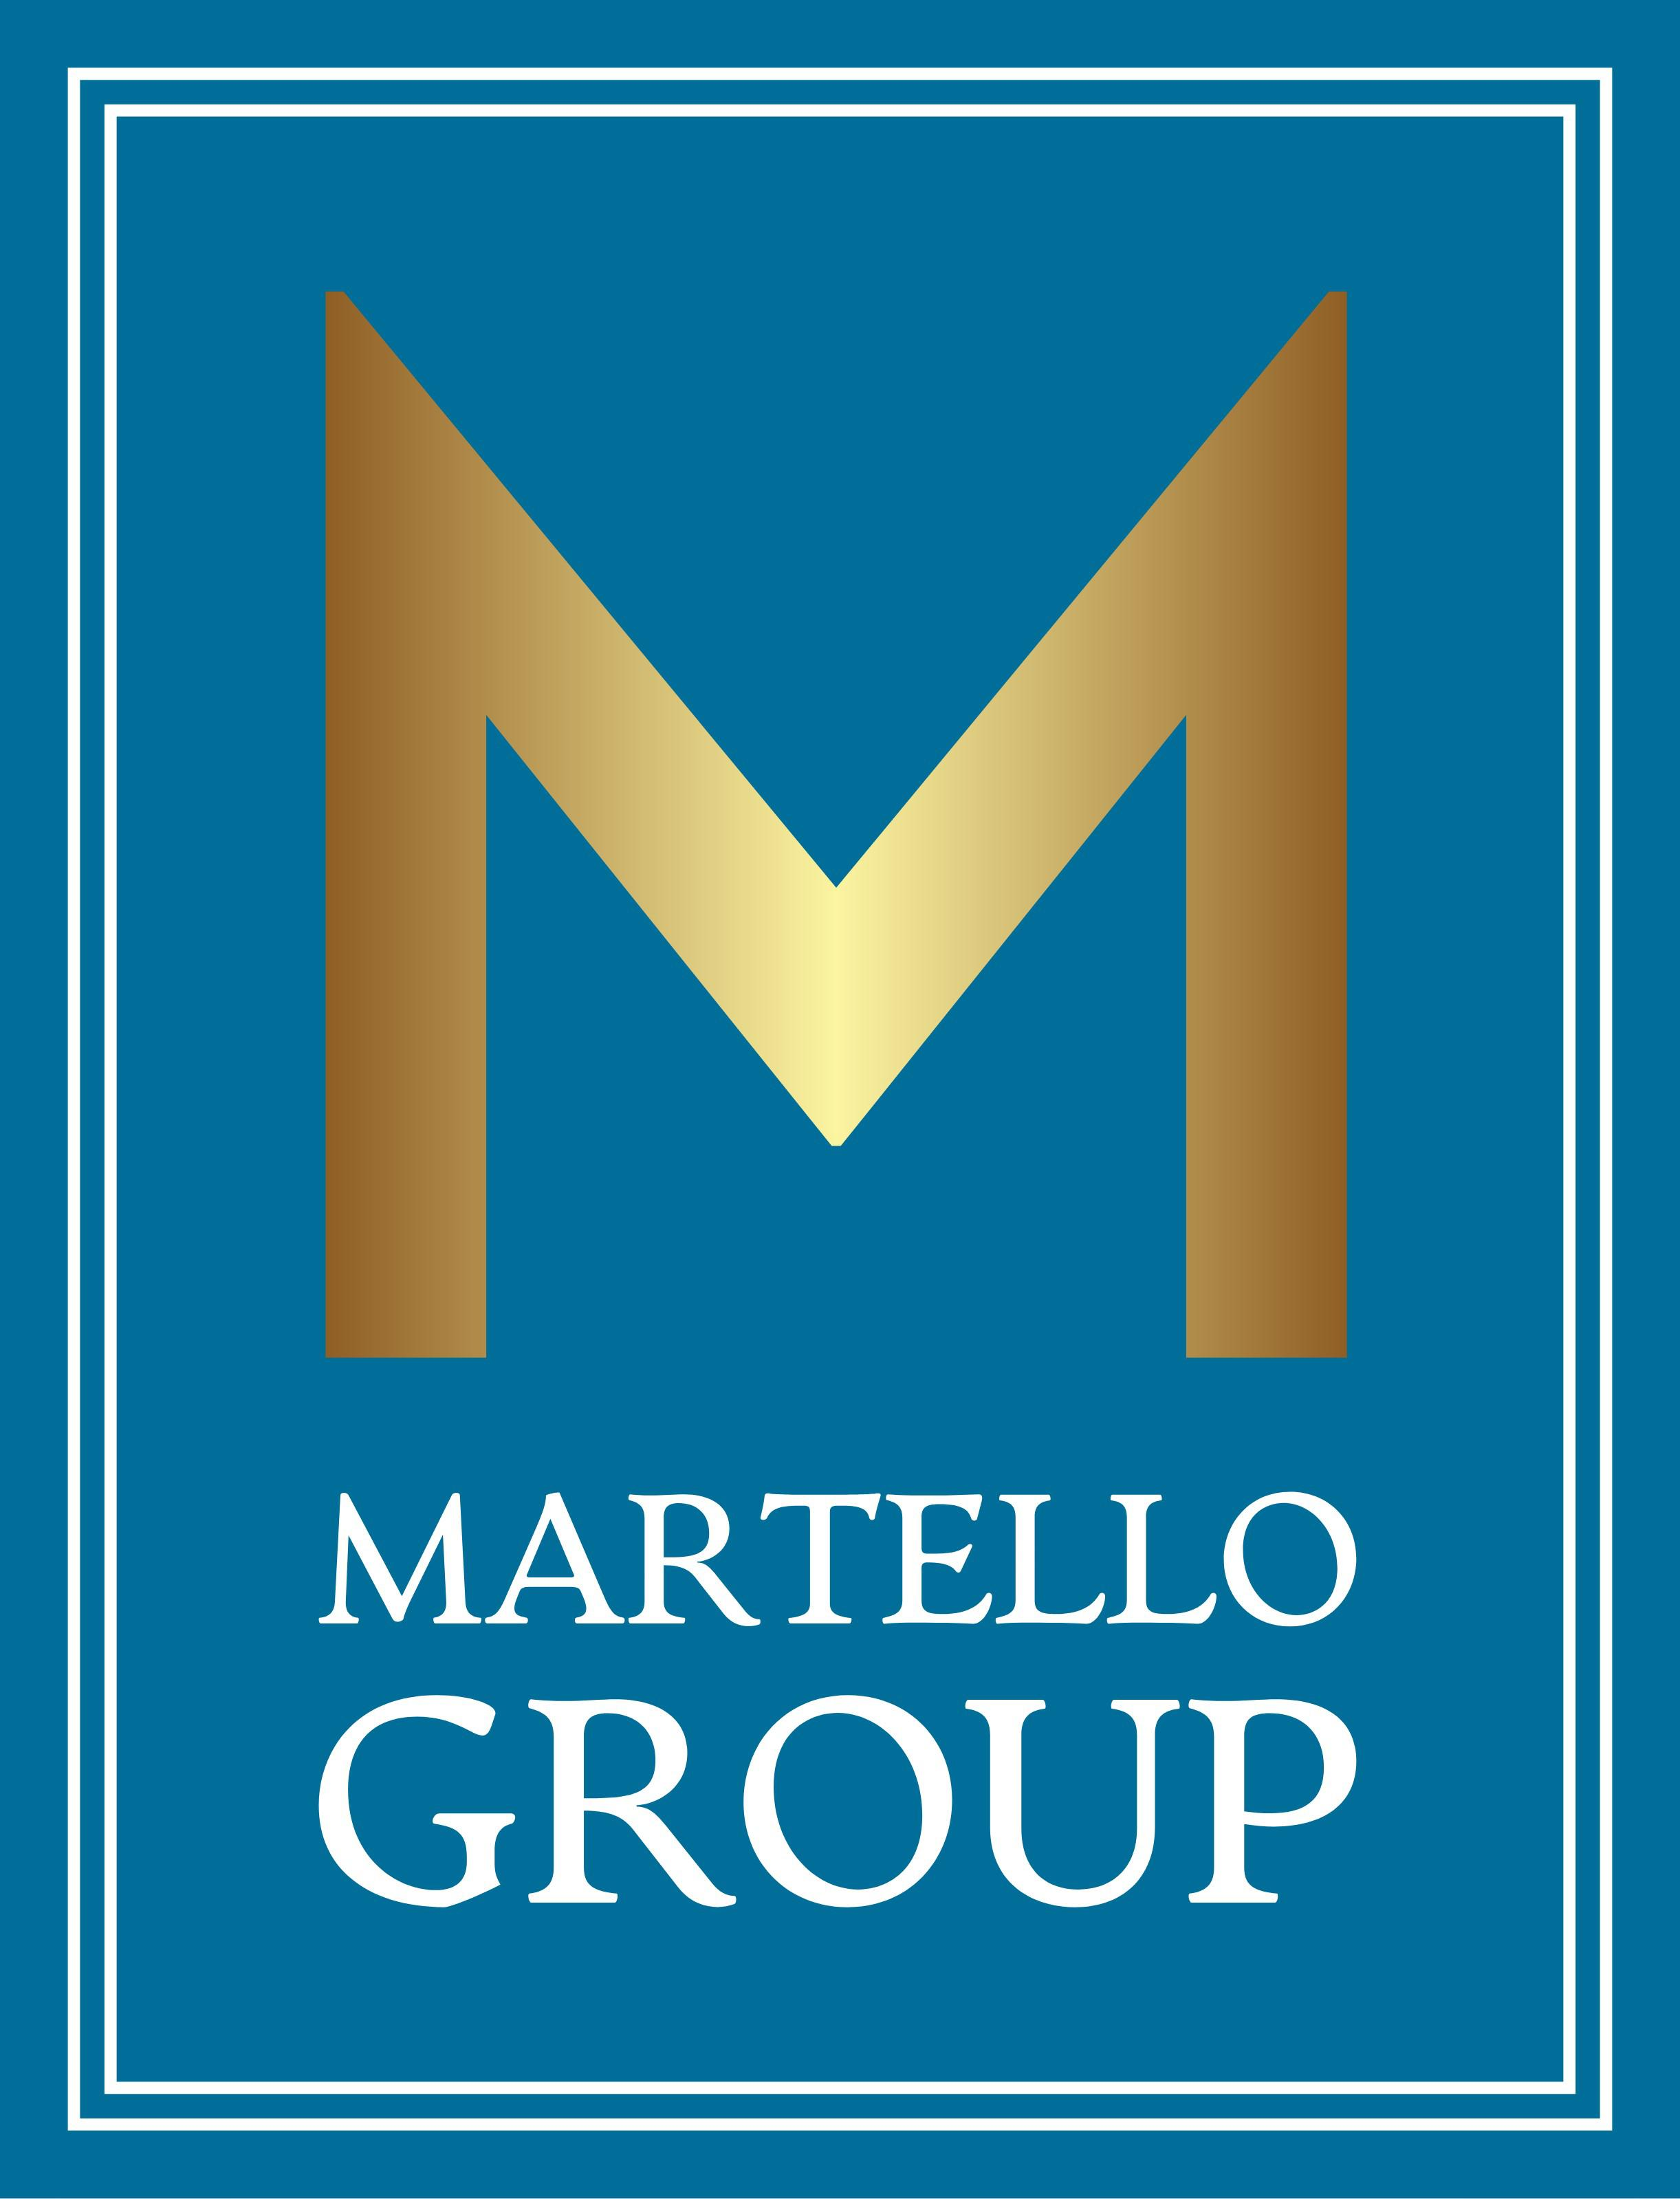 The Martello Group Logo